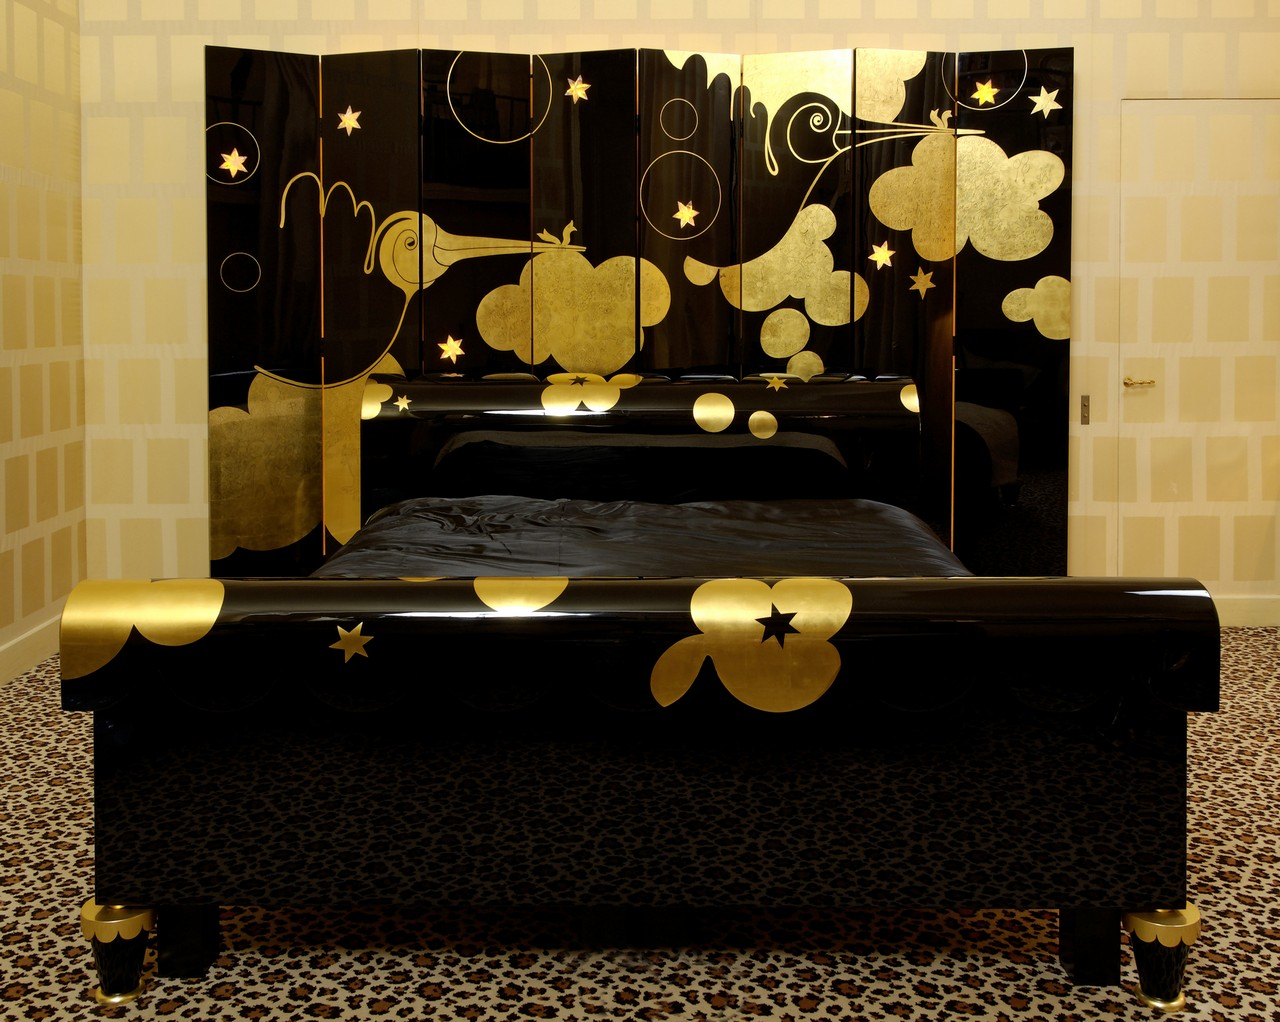 lit tina 2 hubert le gall. Black Bedroom Furniture Sets. Home Design Ideas